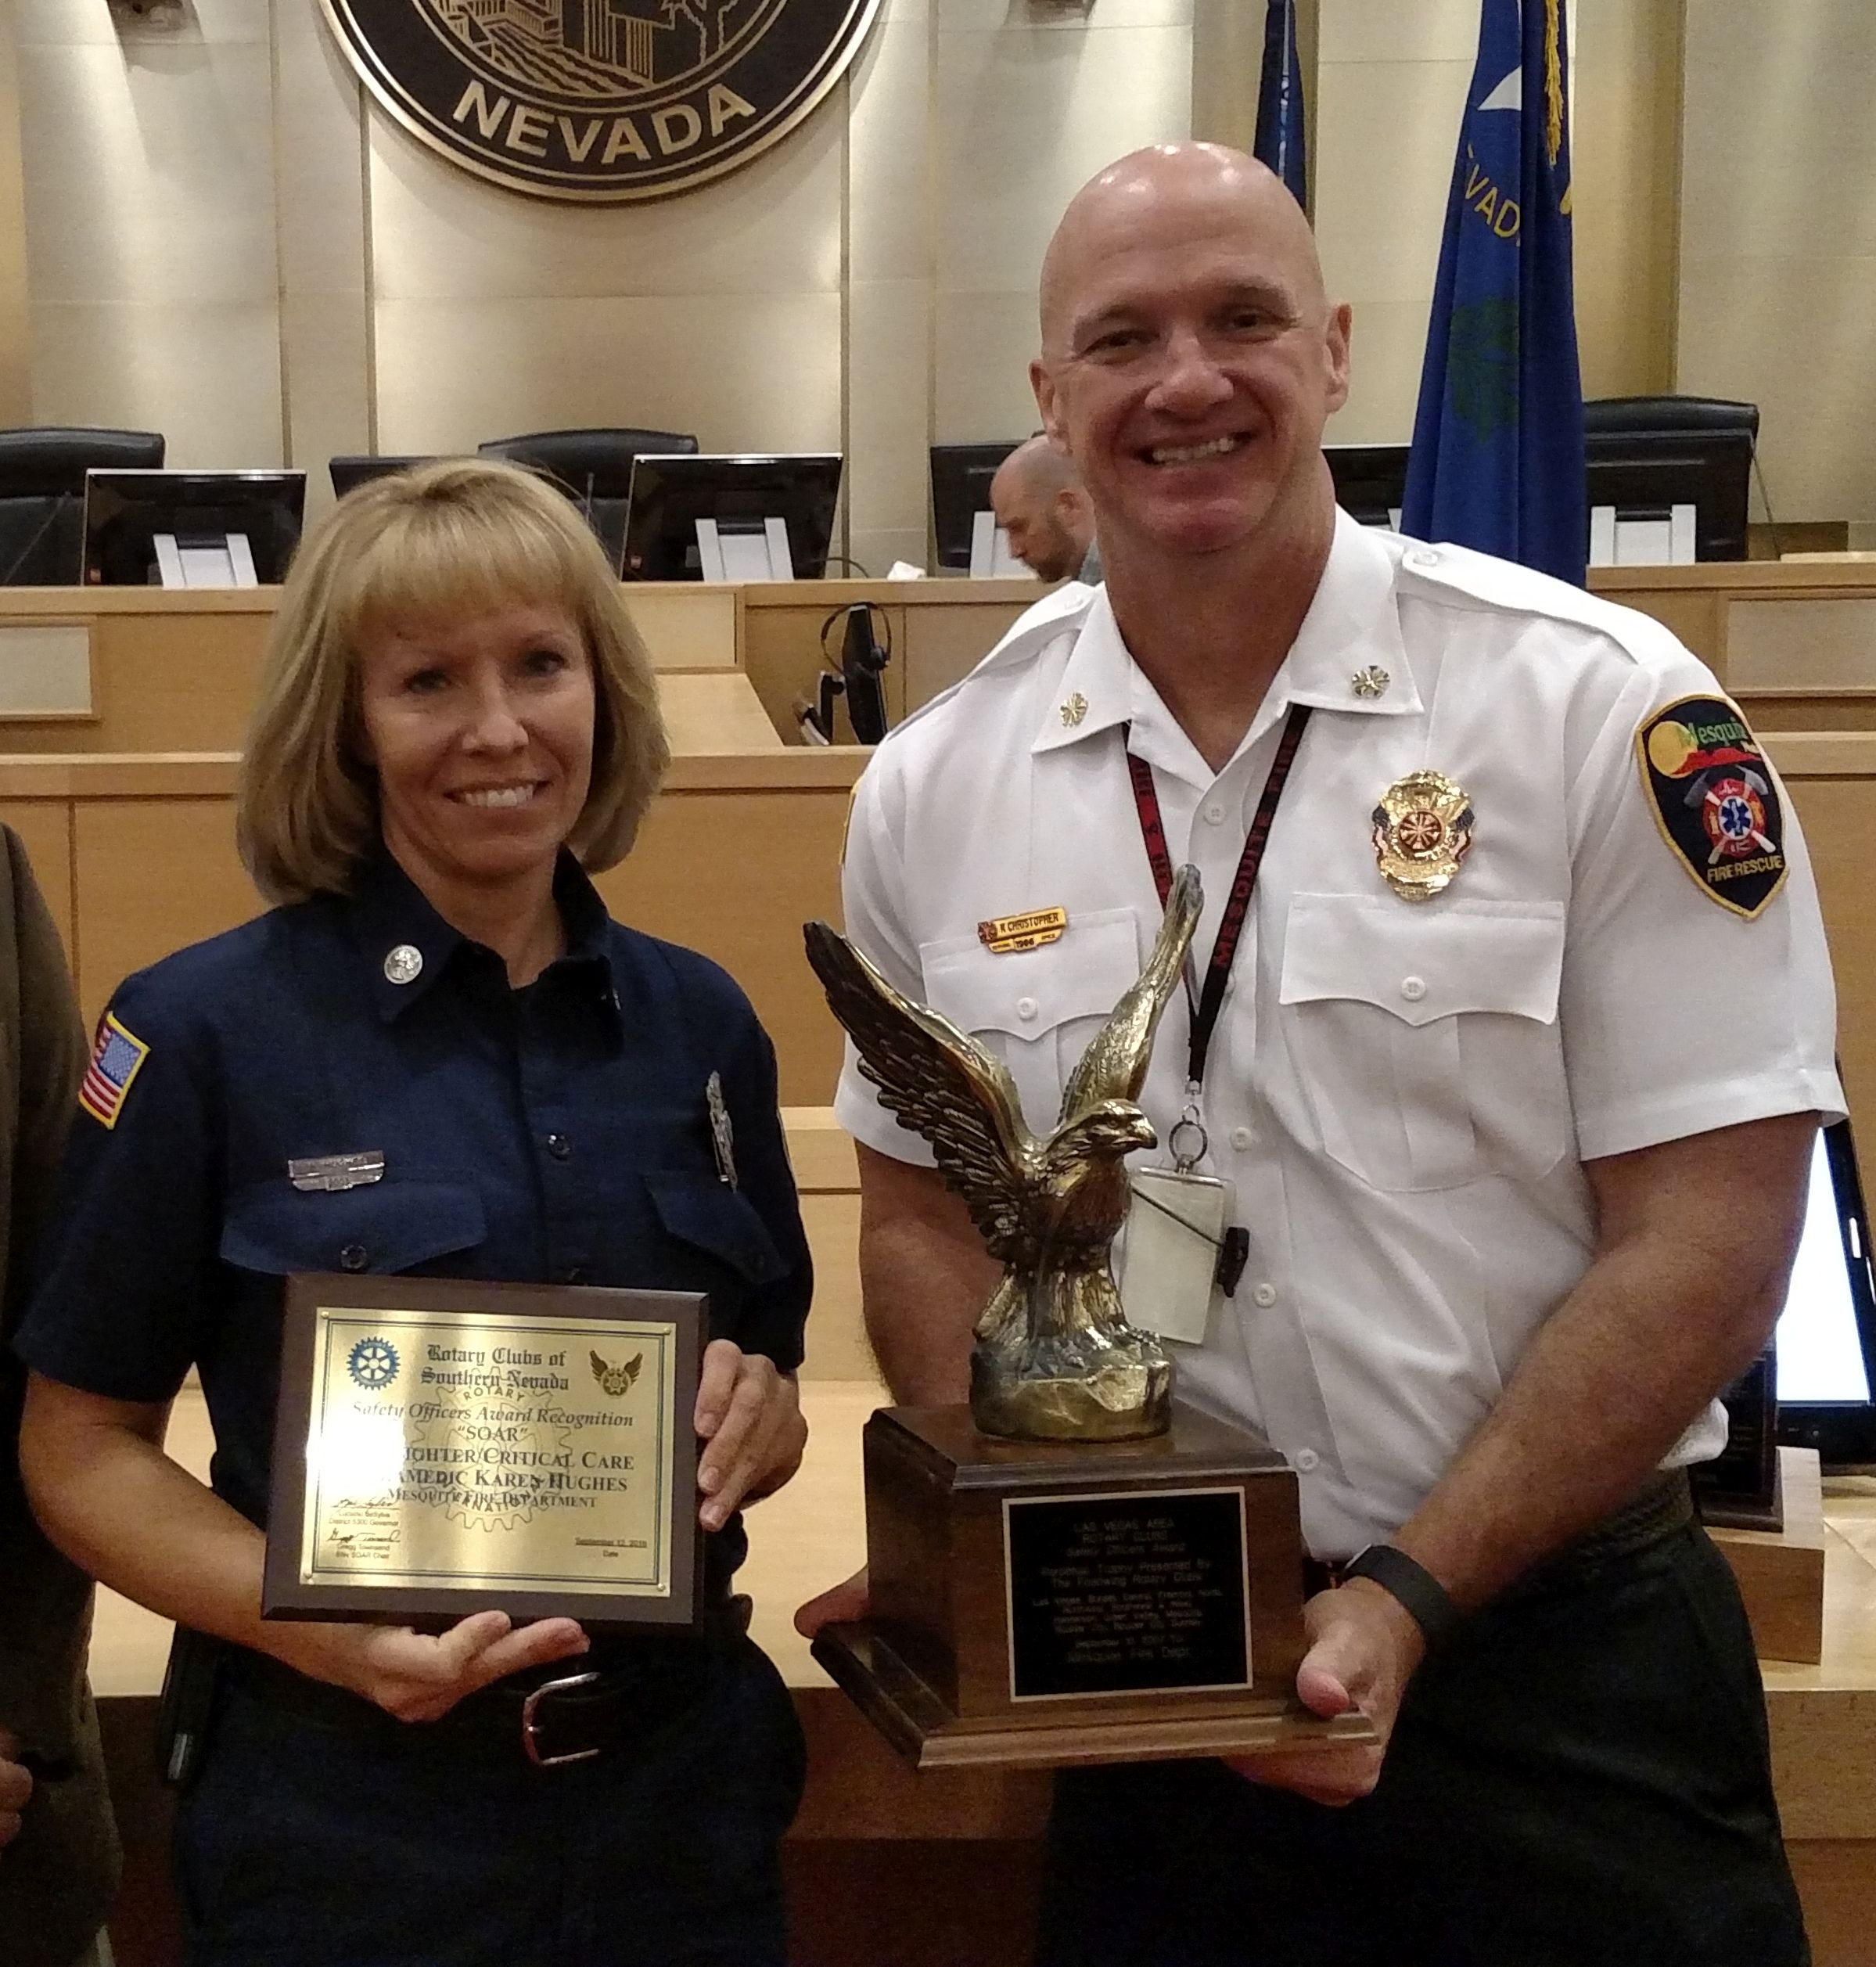 From L-R: Mesquite Firefighter/Critical Care Paramedics Karen Hughes and Jayson Andrus hold their SOAR award. Las Vegas, Nevada, undated | Photo courtesy of Mesquite Fire and Rescue, St. George News